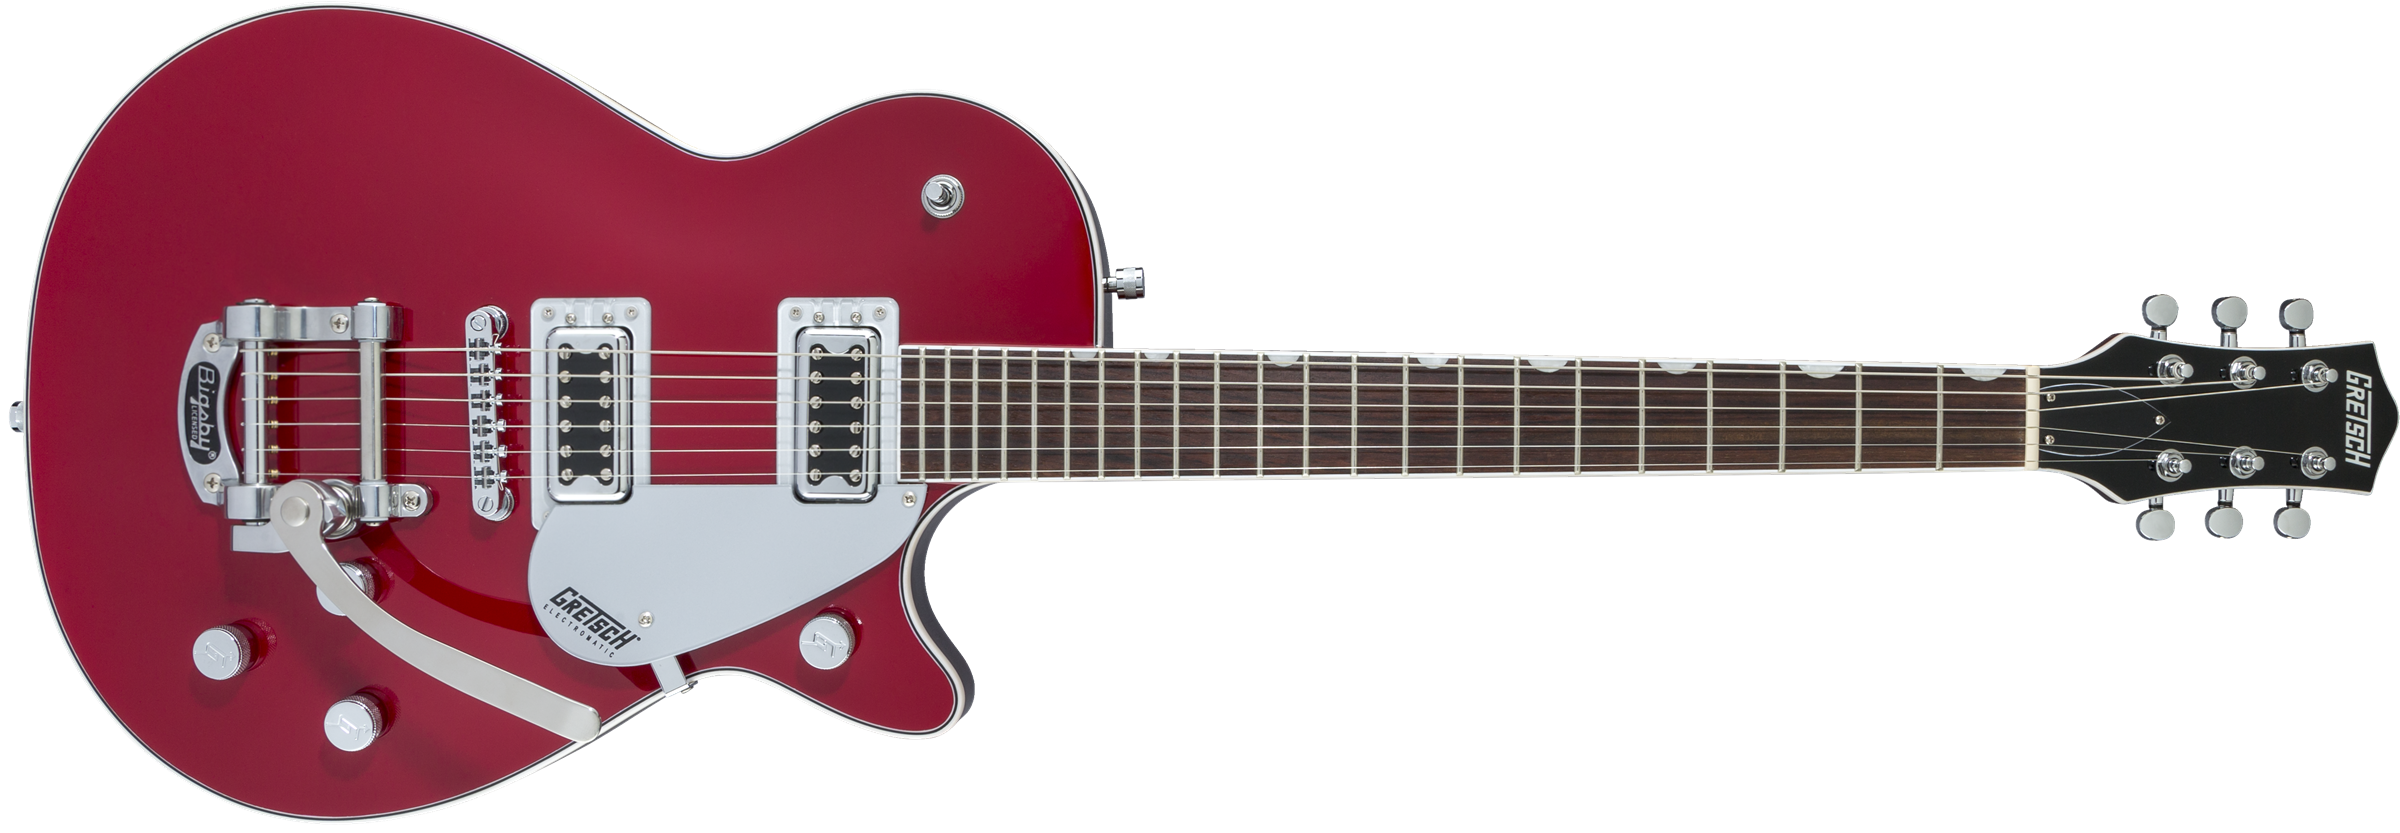 Gretsch G5230T Electromatic Jet FT SC w/Bigsby - Firebird Red